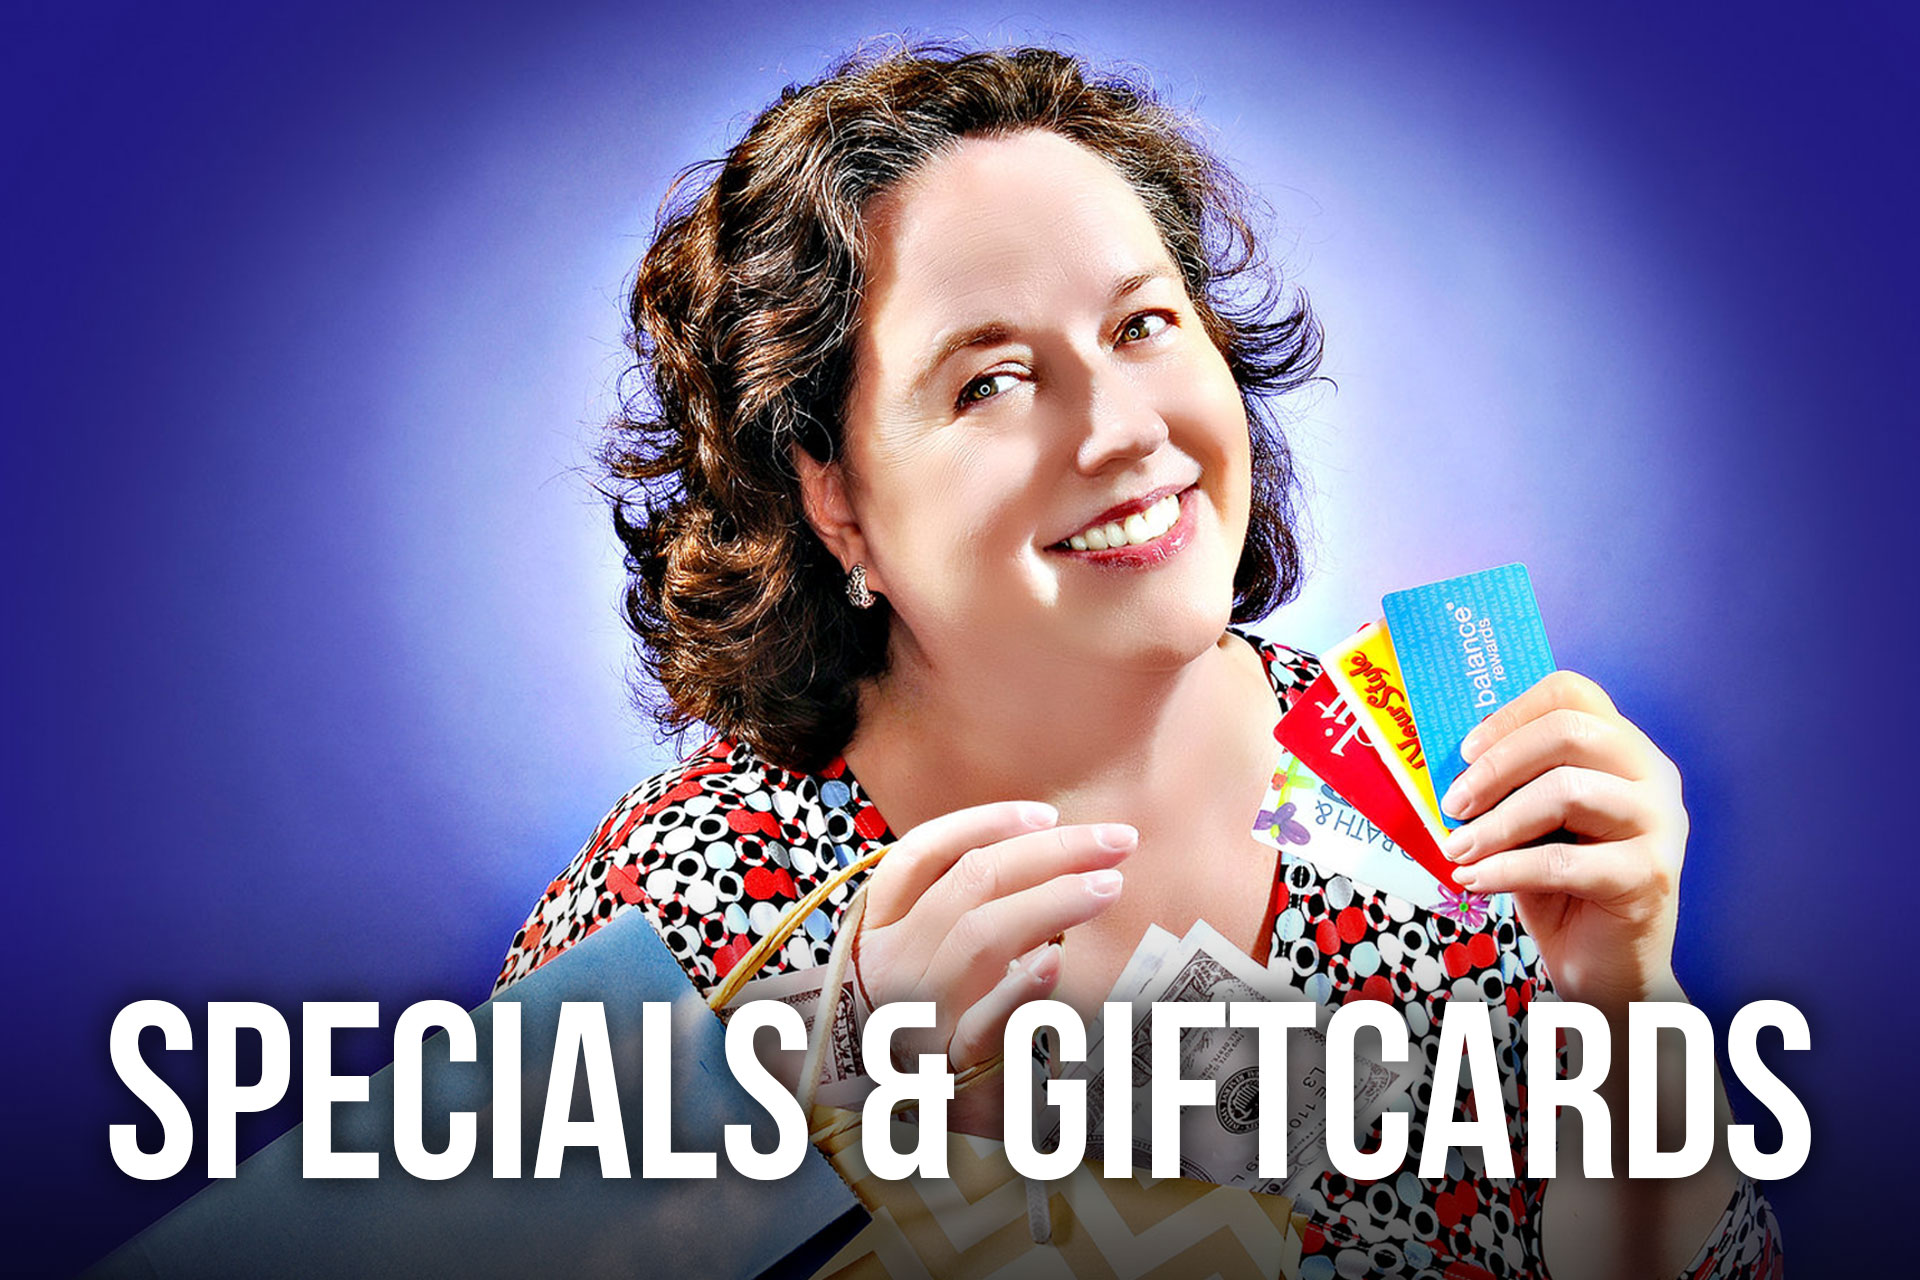 msdig-photo-specials-and-giftcards.jpg